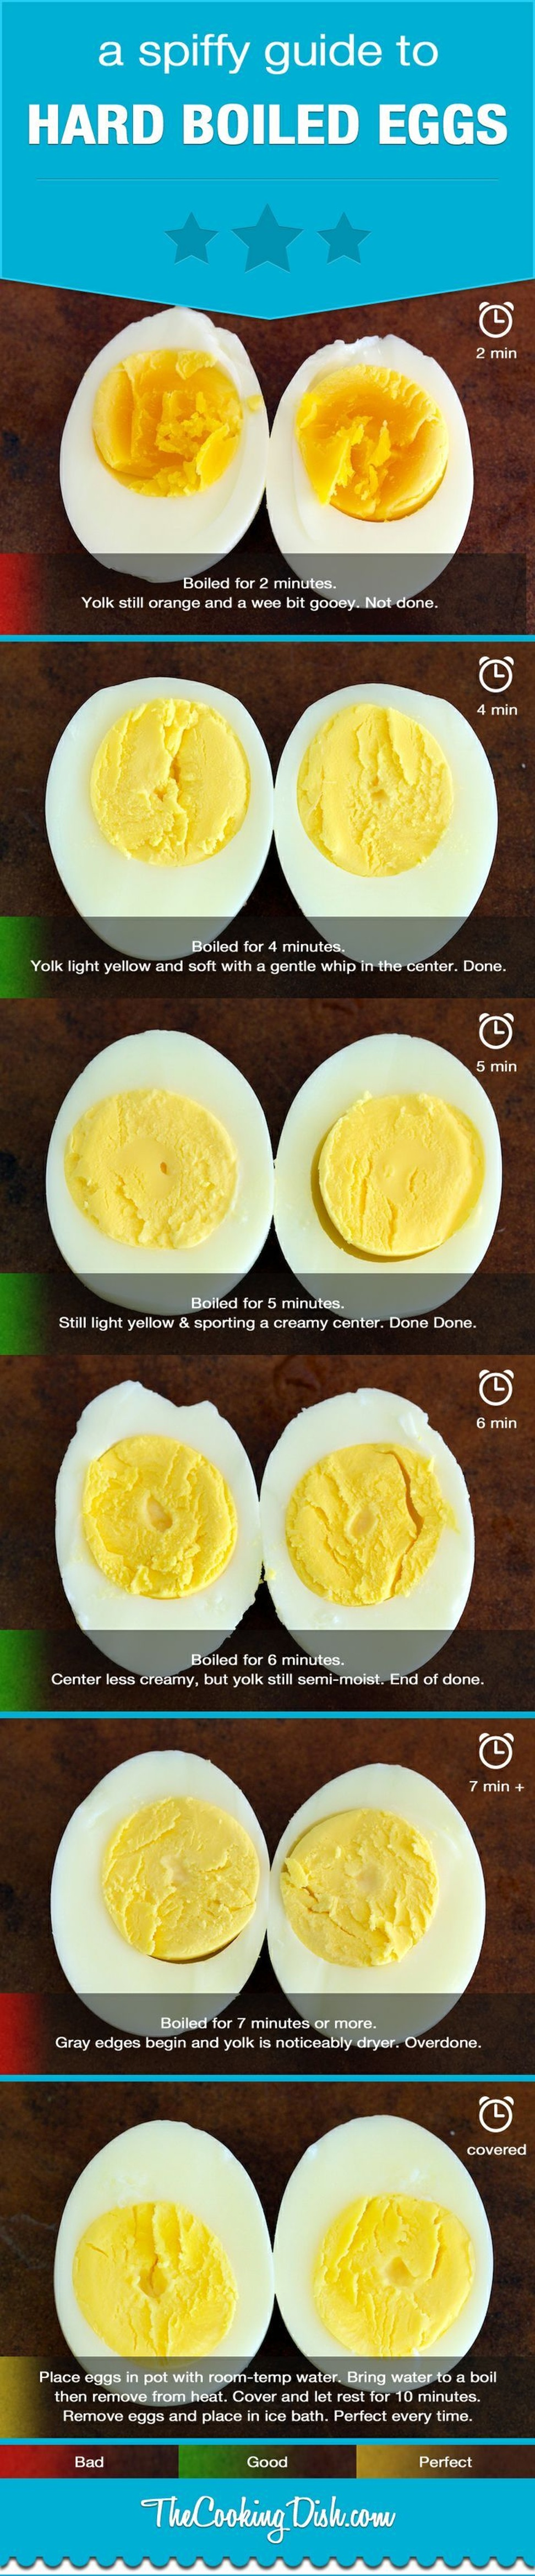 A Quick Guide To Hard Boiled Eggs Done Right Infographic